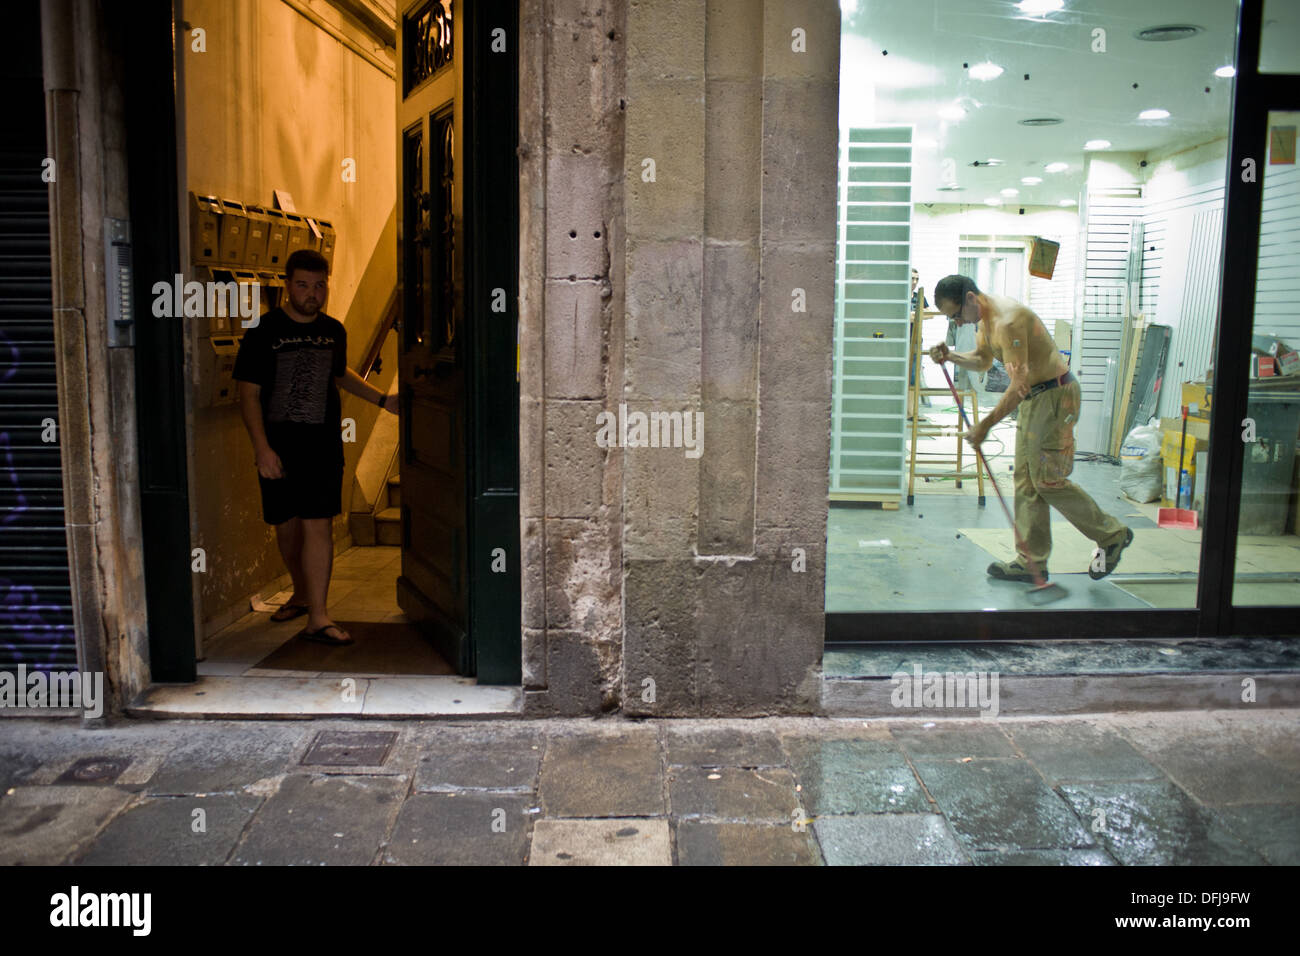 Everyday  scene in Banys Nous Street in the Gothic Quarter of  Barcelona during a wet and rainy day. - Stock Image